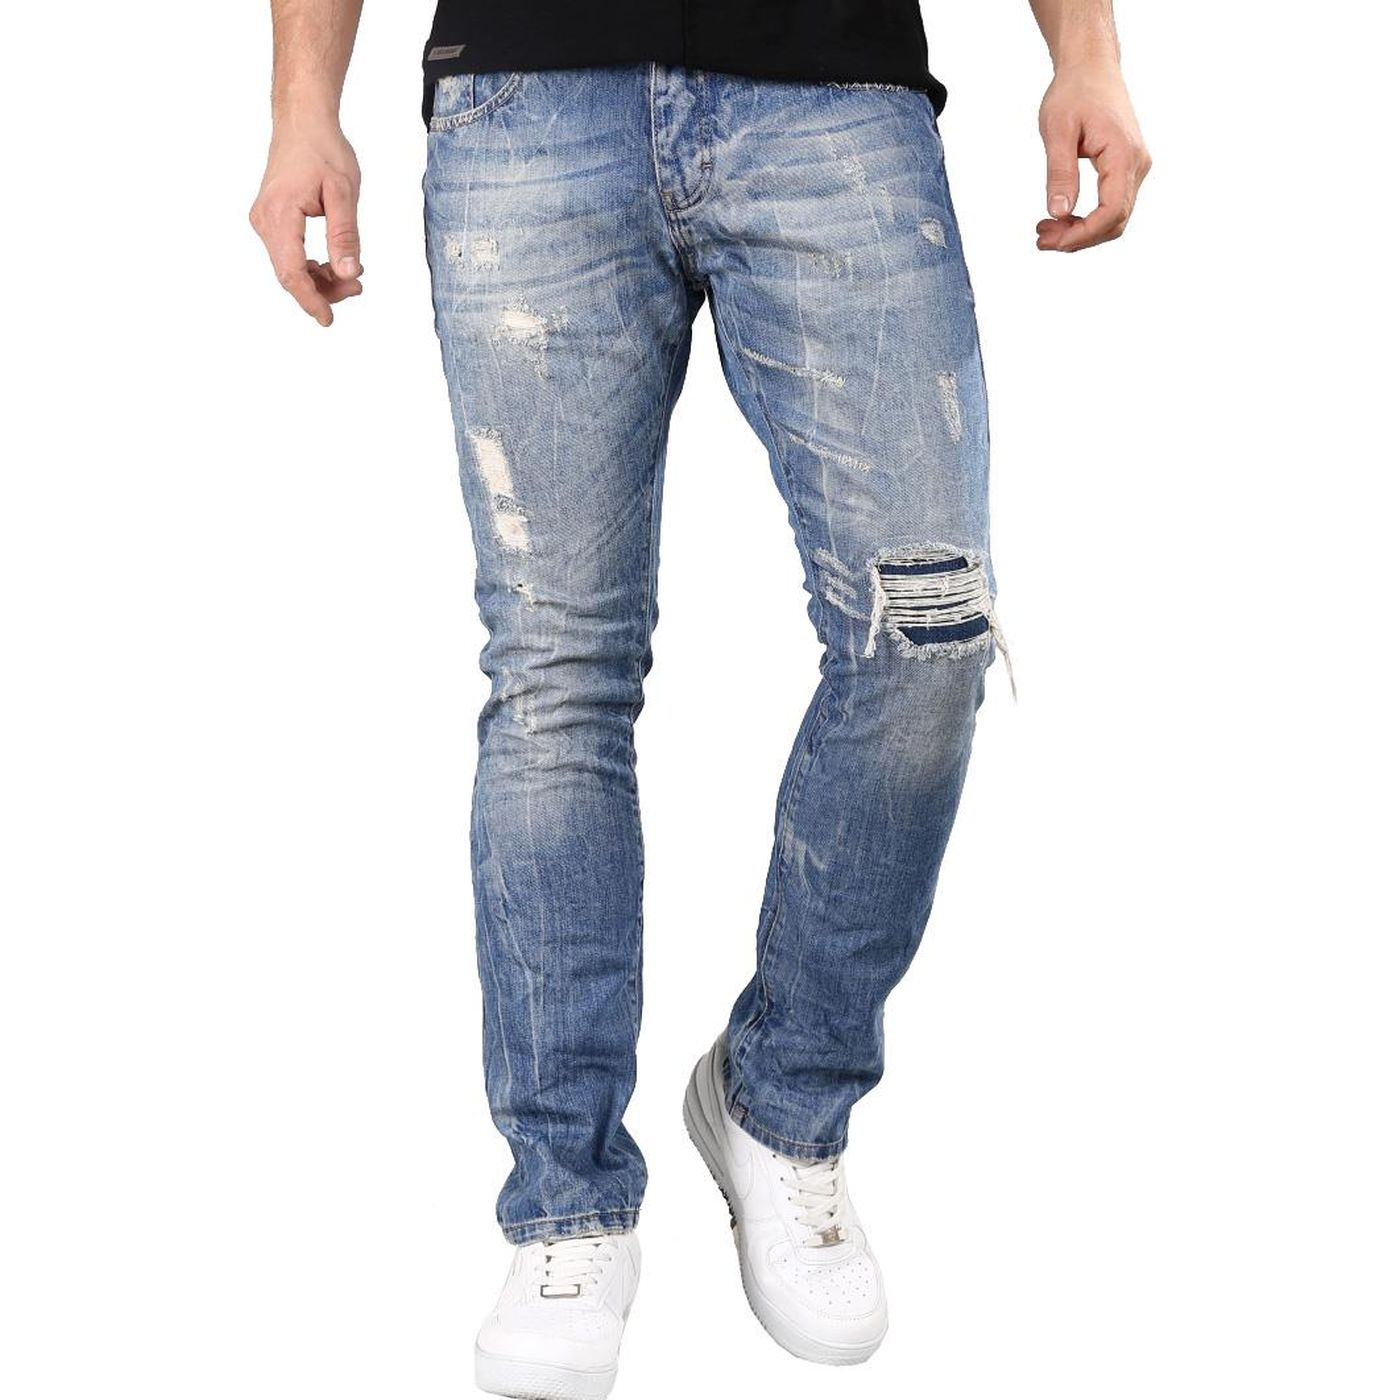 dd5f2da0d76db1 Red Bridge Herren Jeans Hose Cuts And Stitches Blau Straight Fit Used-Look  Destroyed